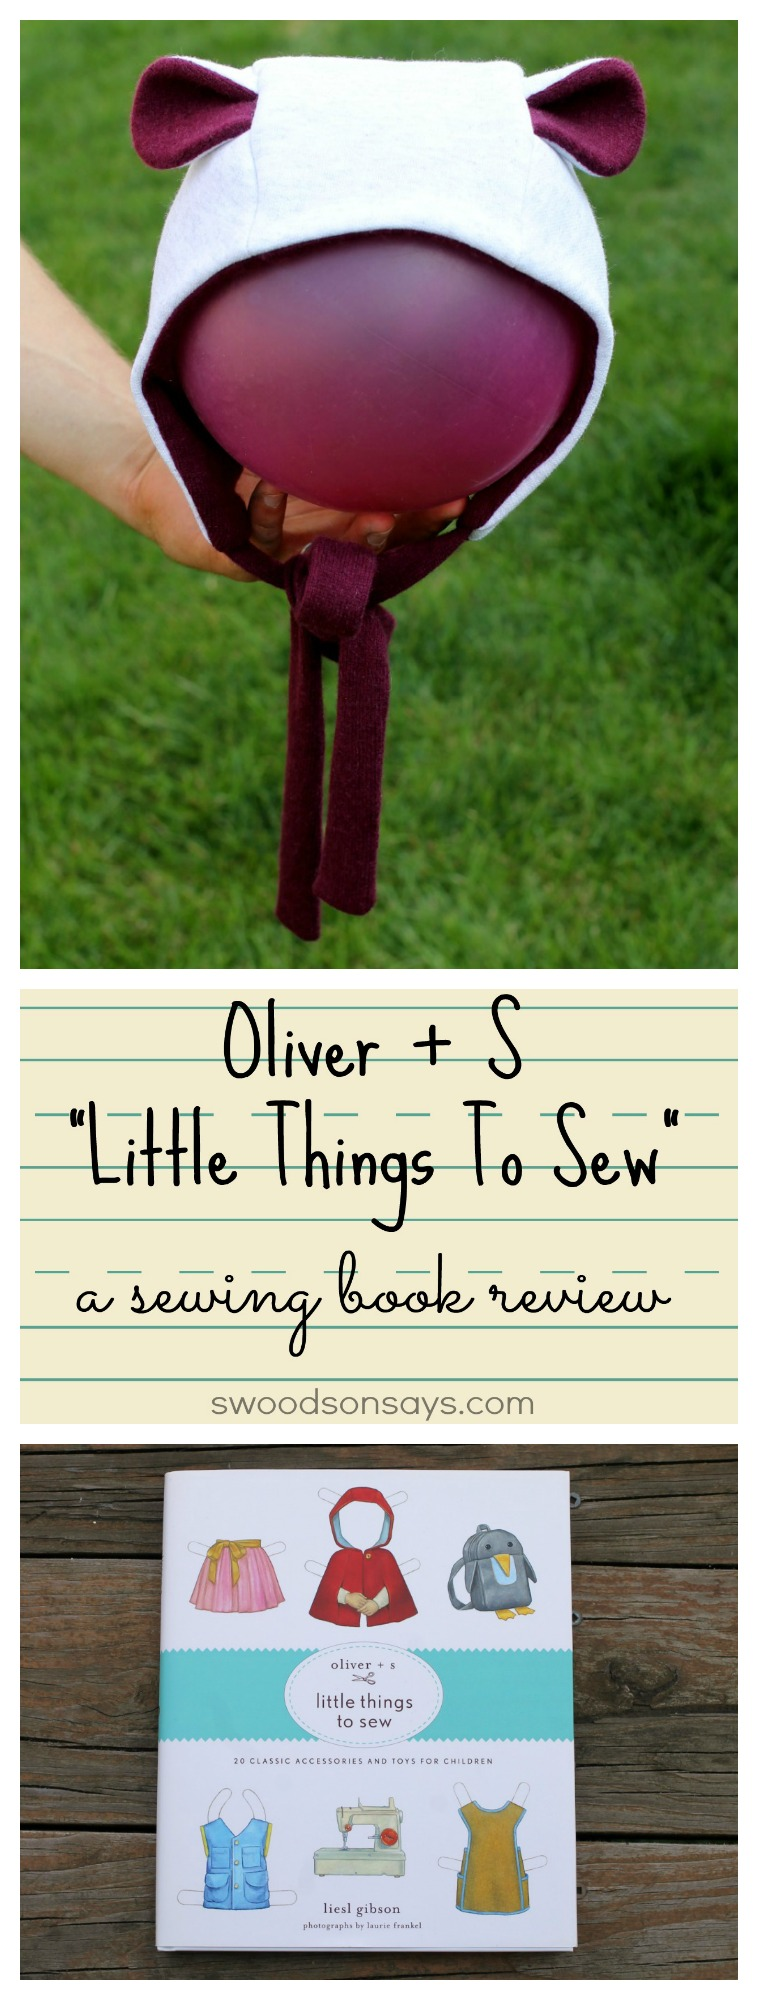 Oliver + S Sewing Book Review